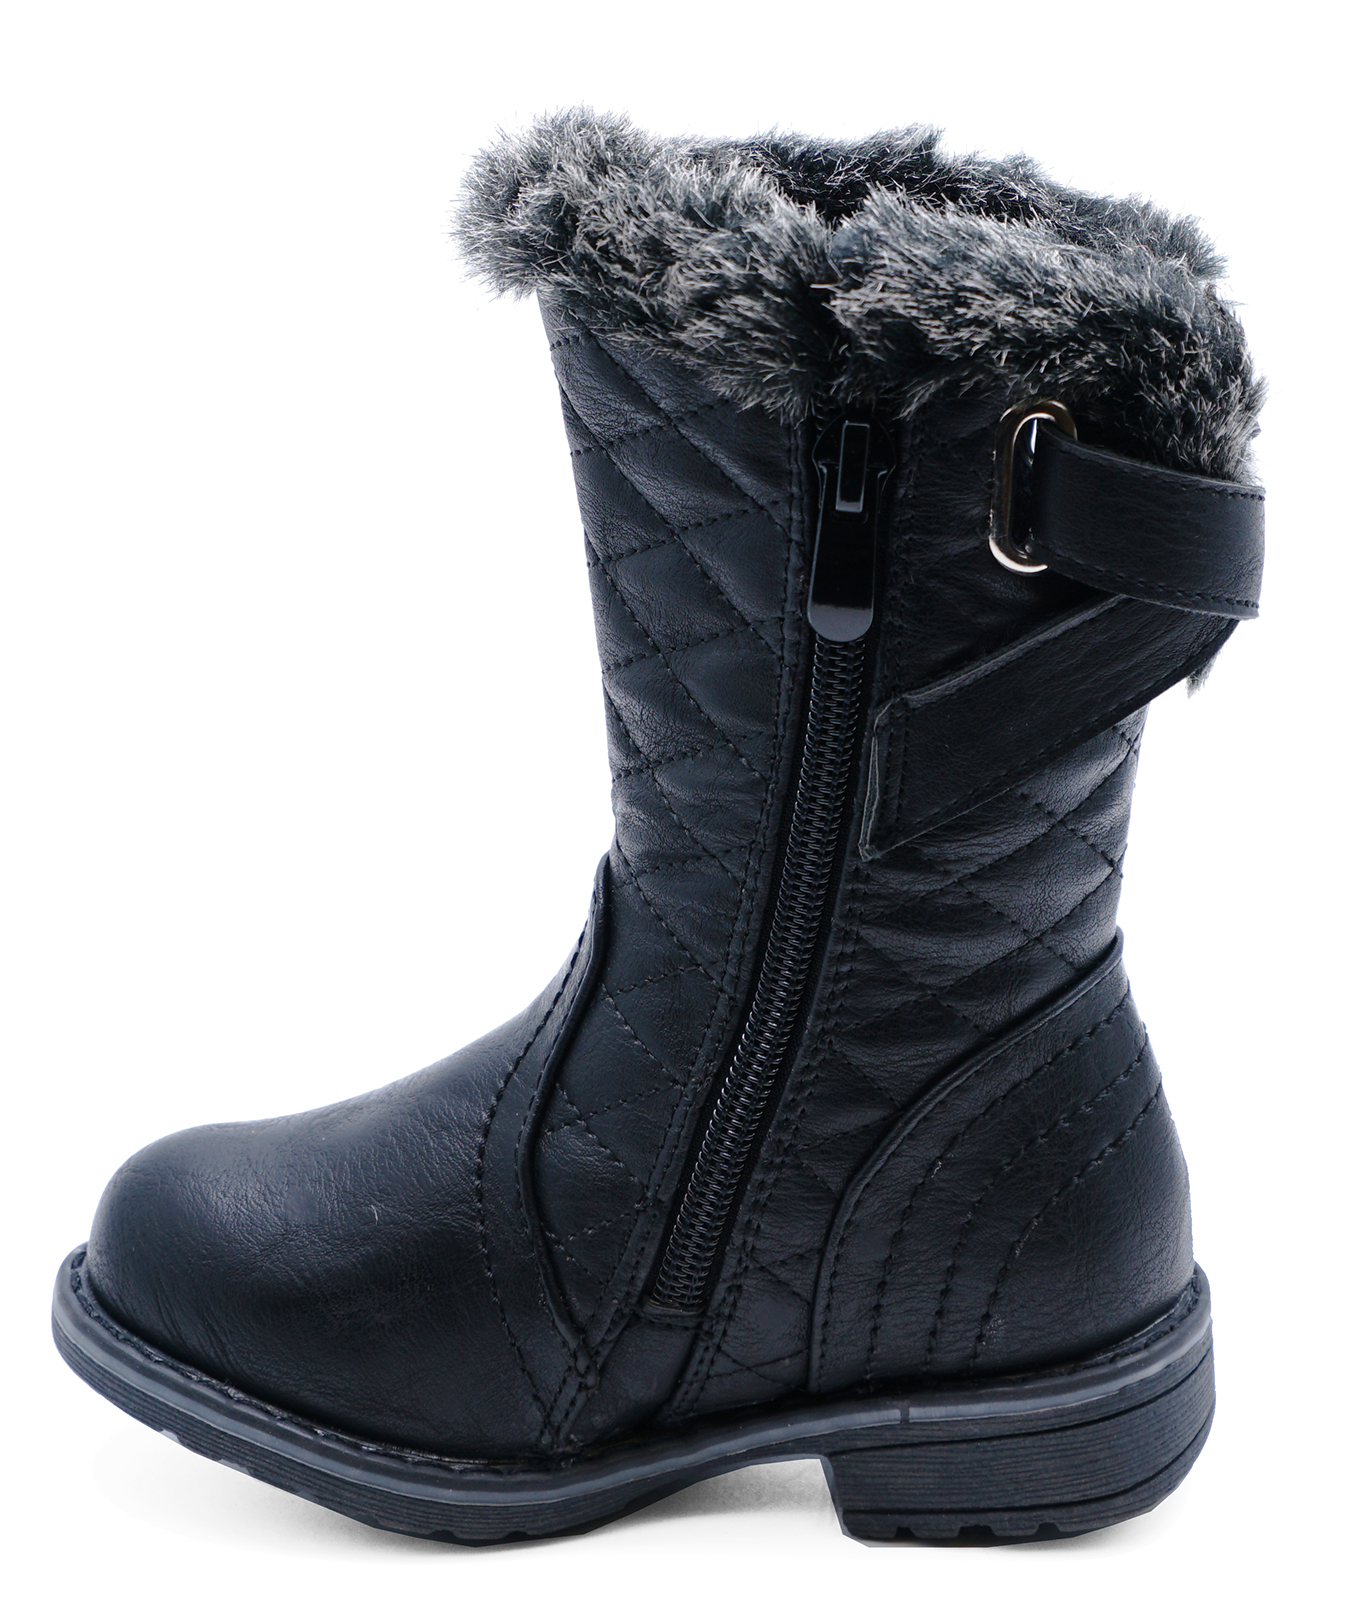 winter shoes for girls